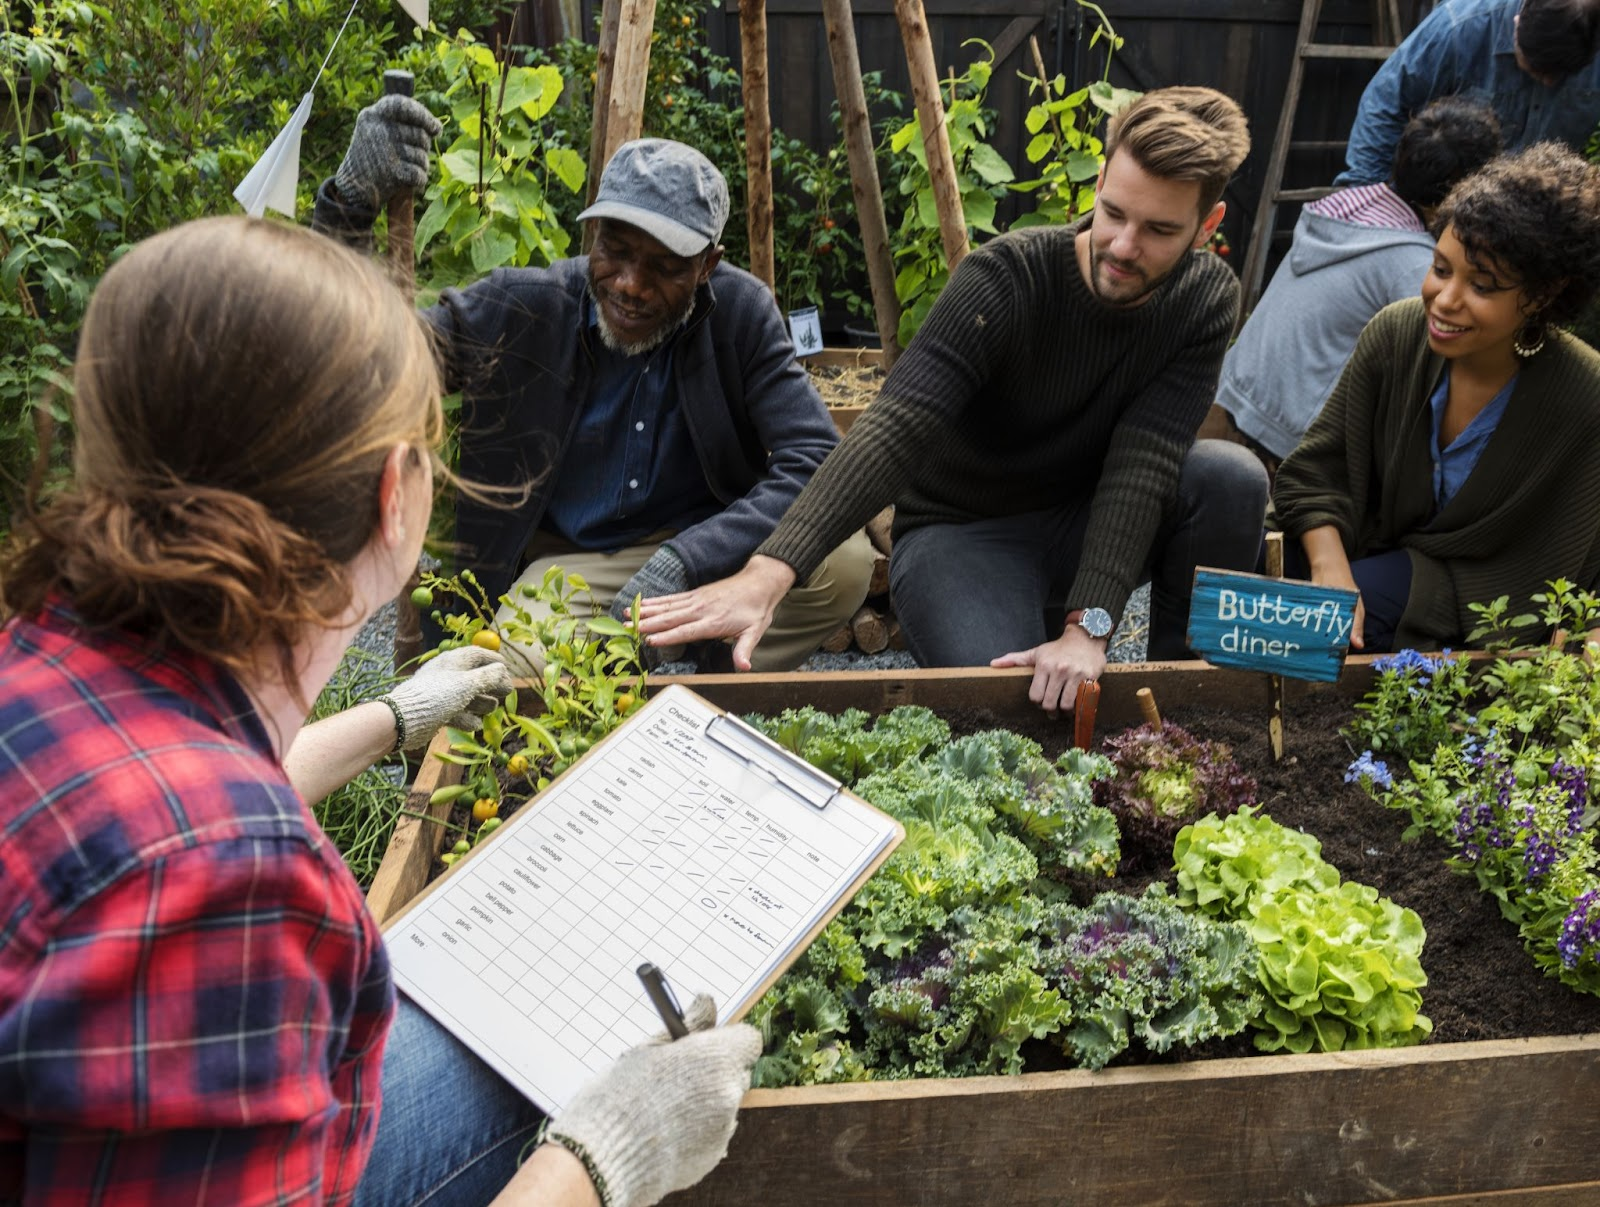 Image of people participating in community gardening. Group of people surrounding raised garden beds of leafy greens.